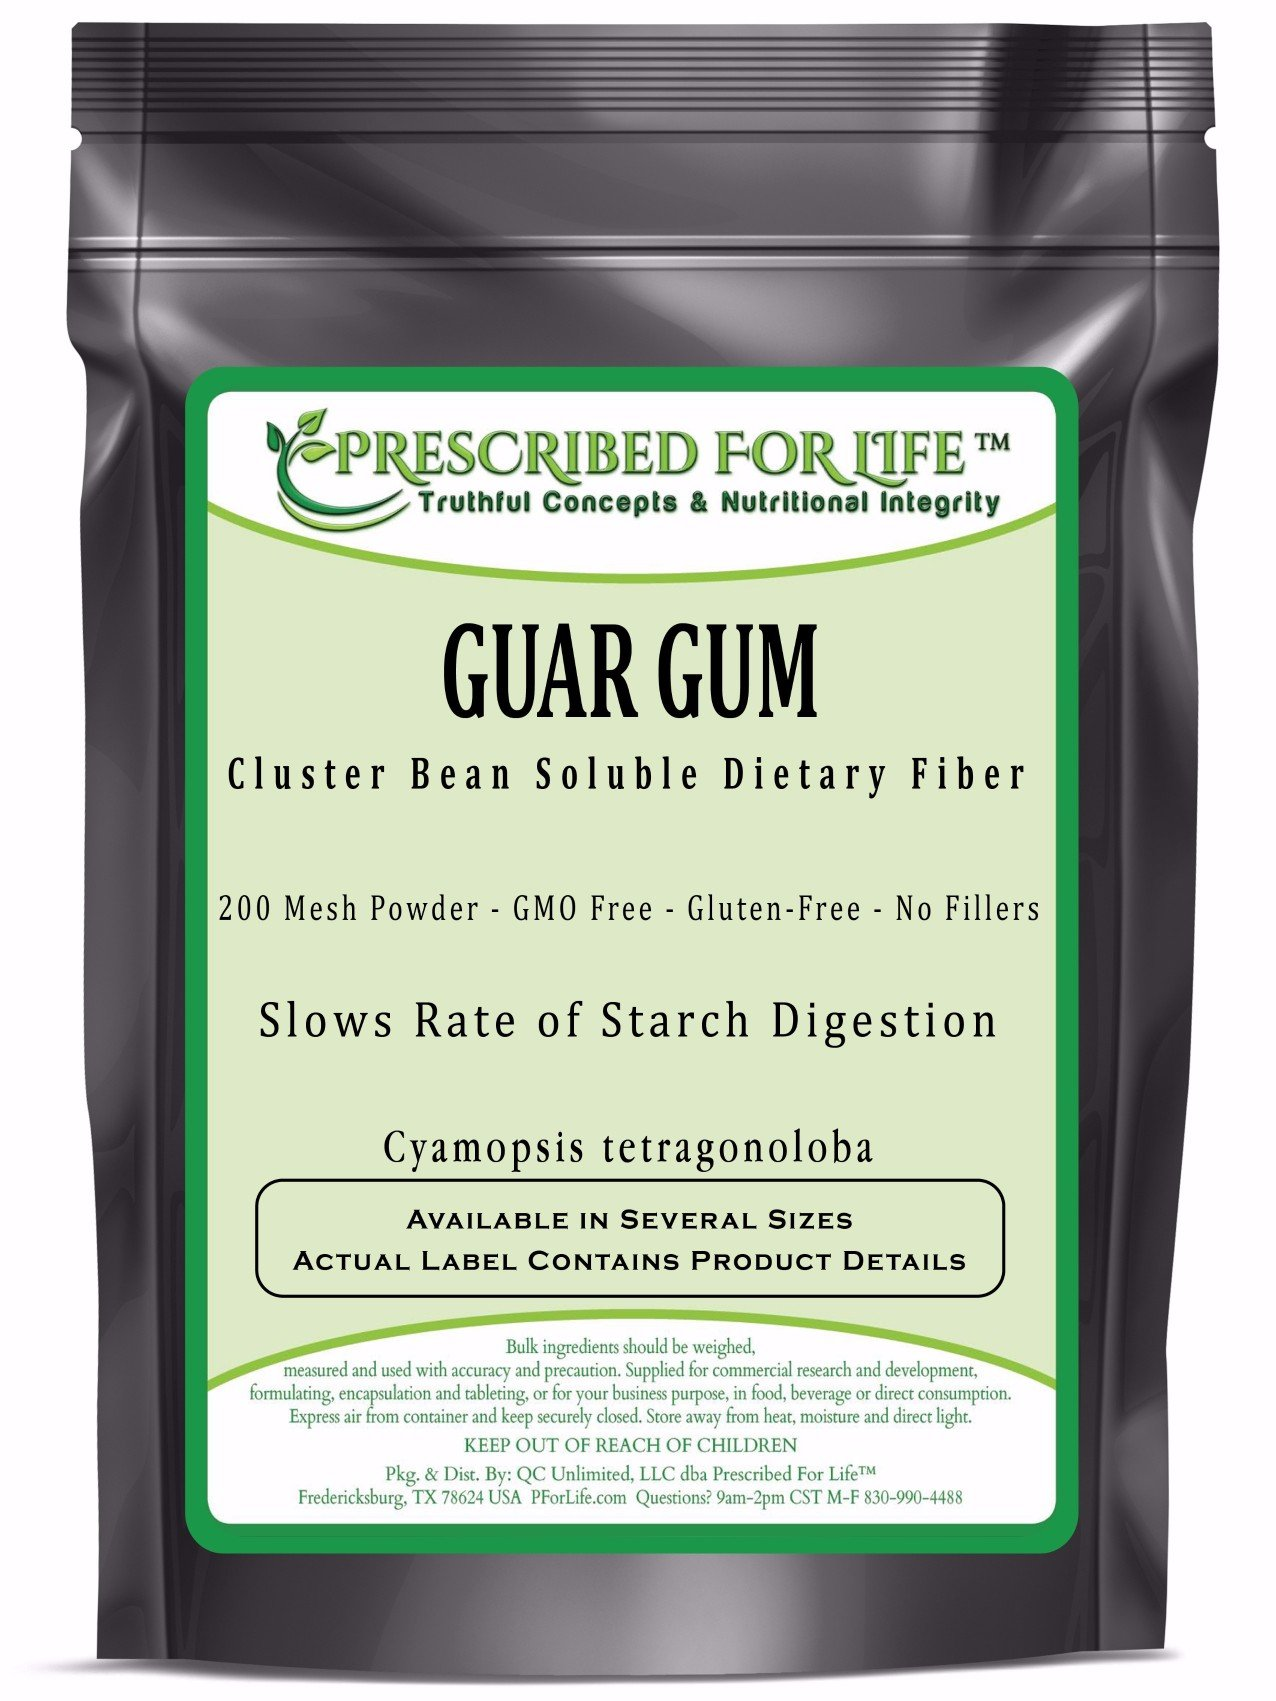 Guar Gum - Natural Dietary Soluble Fiber Powder - 200 Mesh, 10 kg by Prescribed For Life (Image #1)